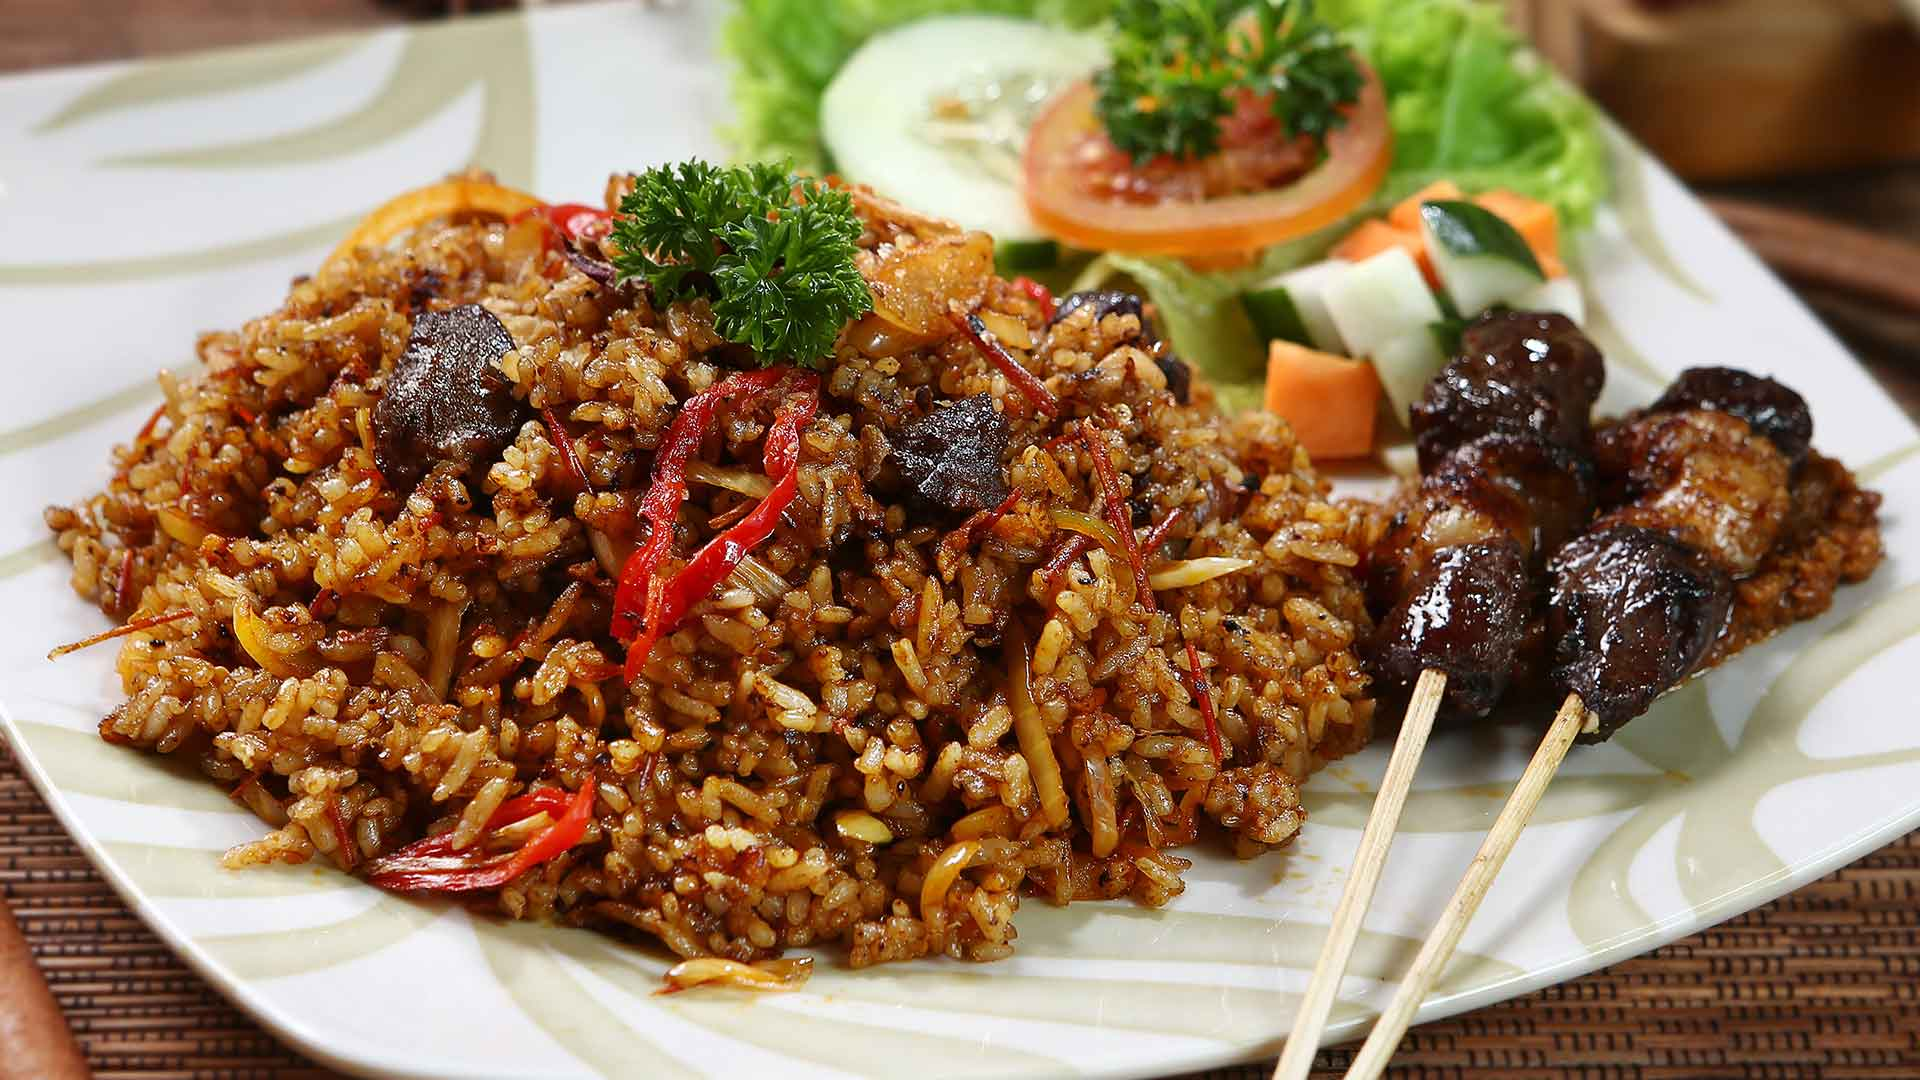 Nasi Goreng Kambing Karma Salak (Karma Salak Mutton Fried Rice)